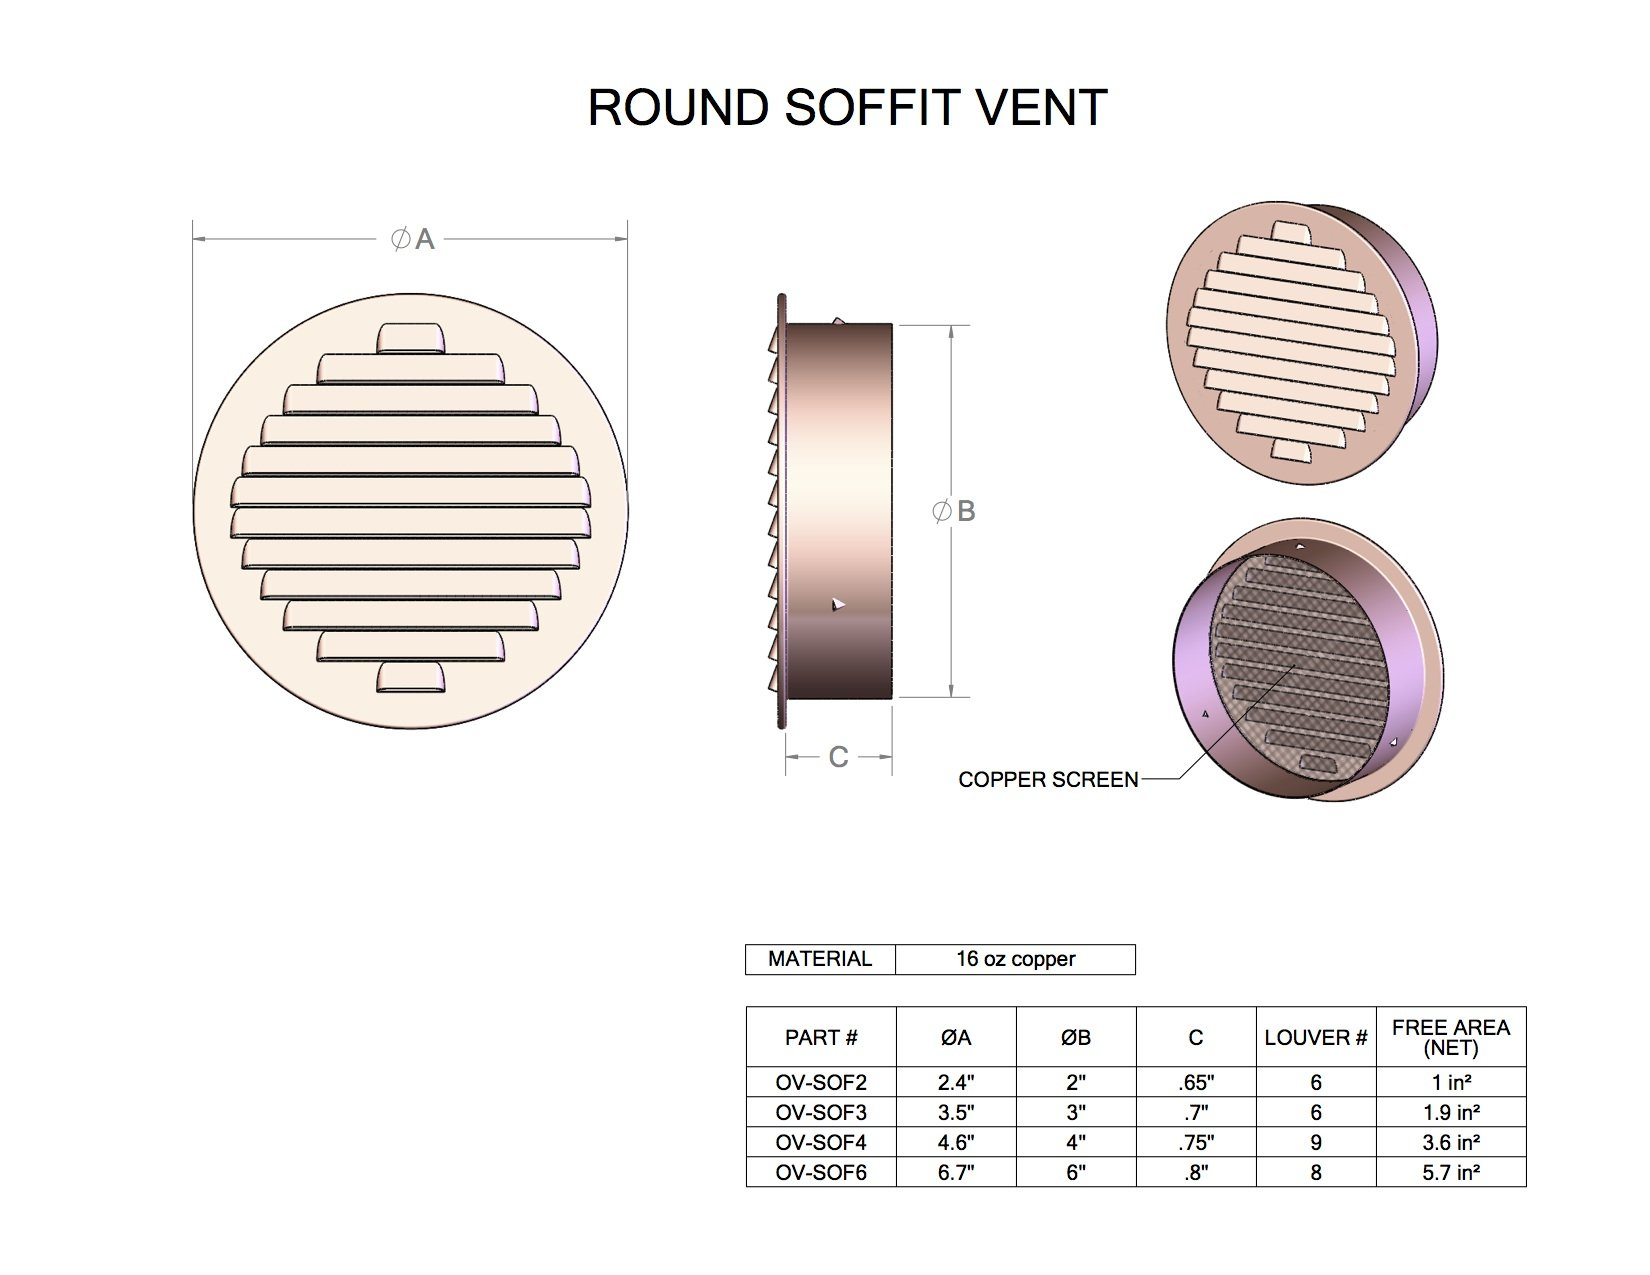 4'' Round Louvered Copper Insert Vent with Screen